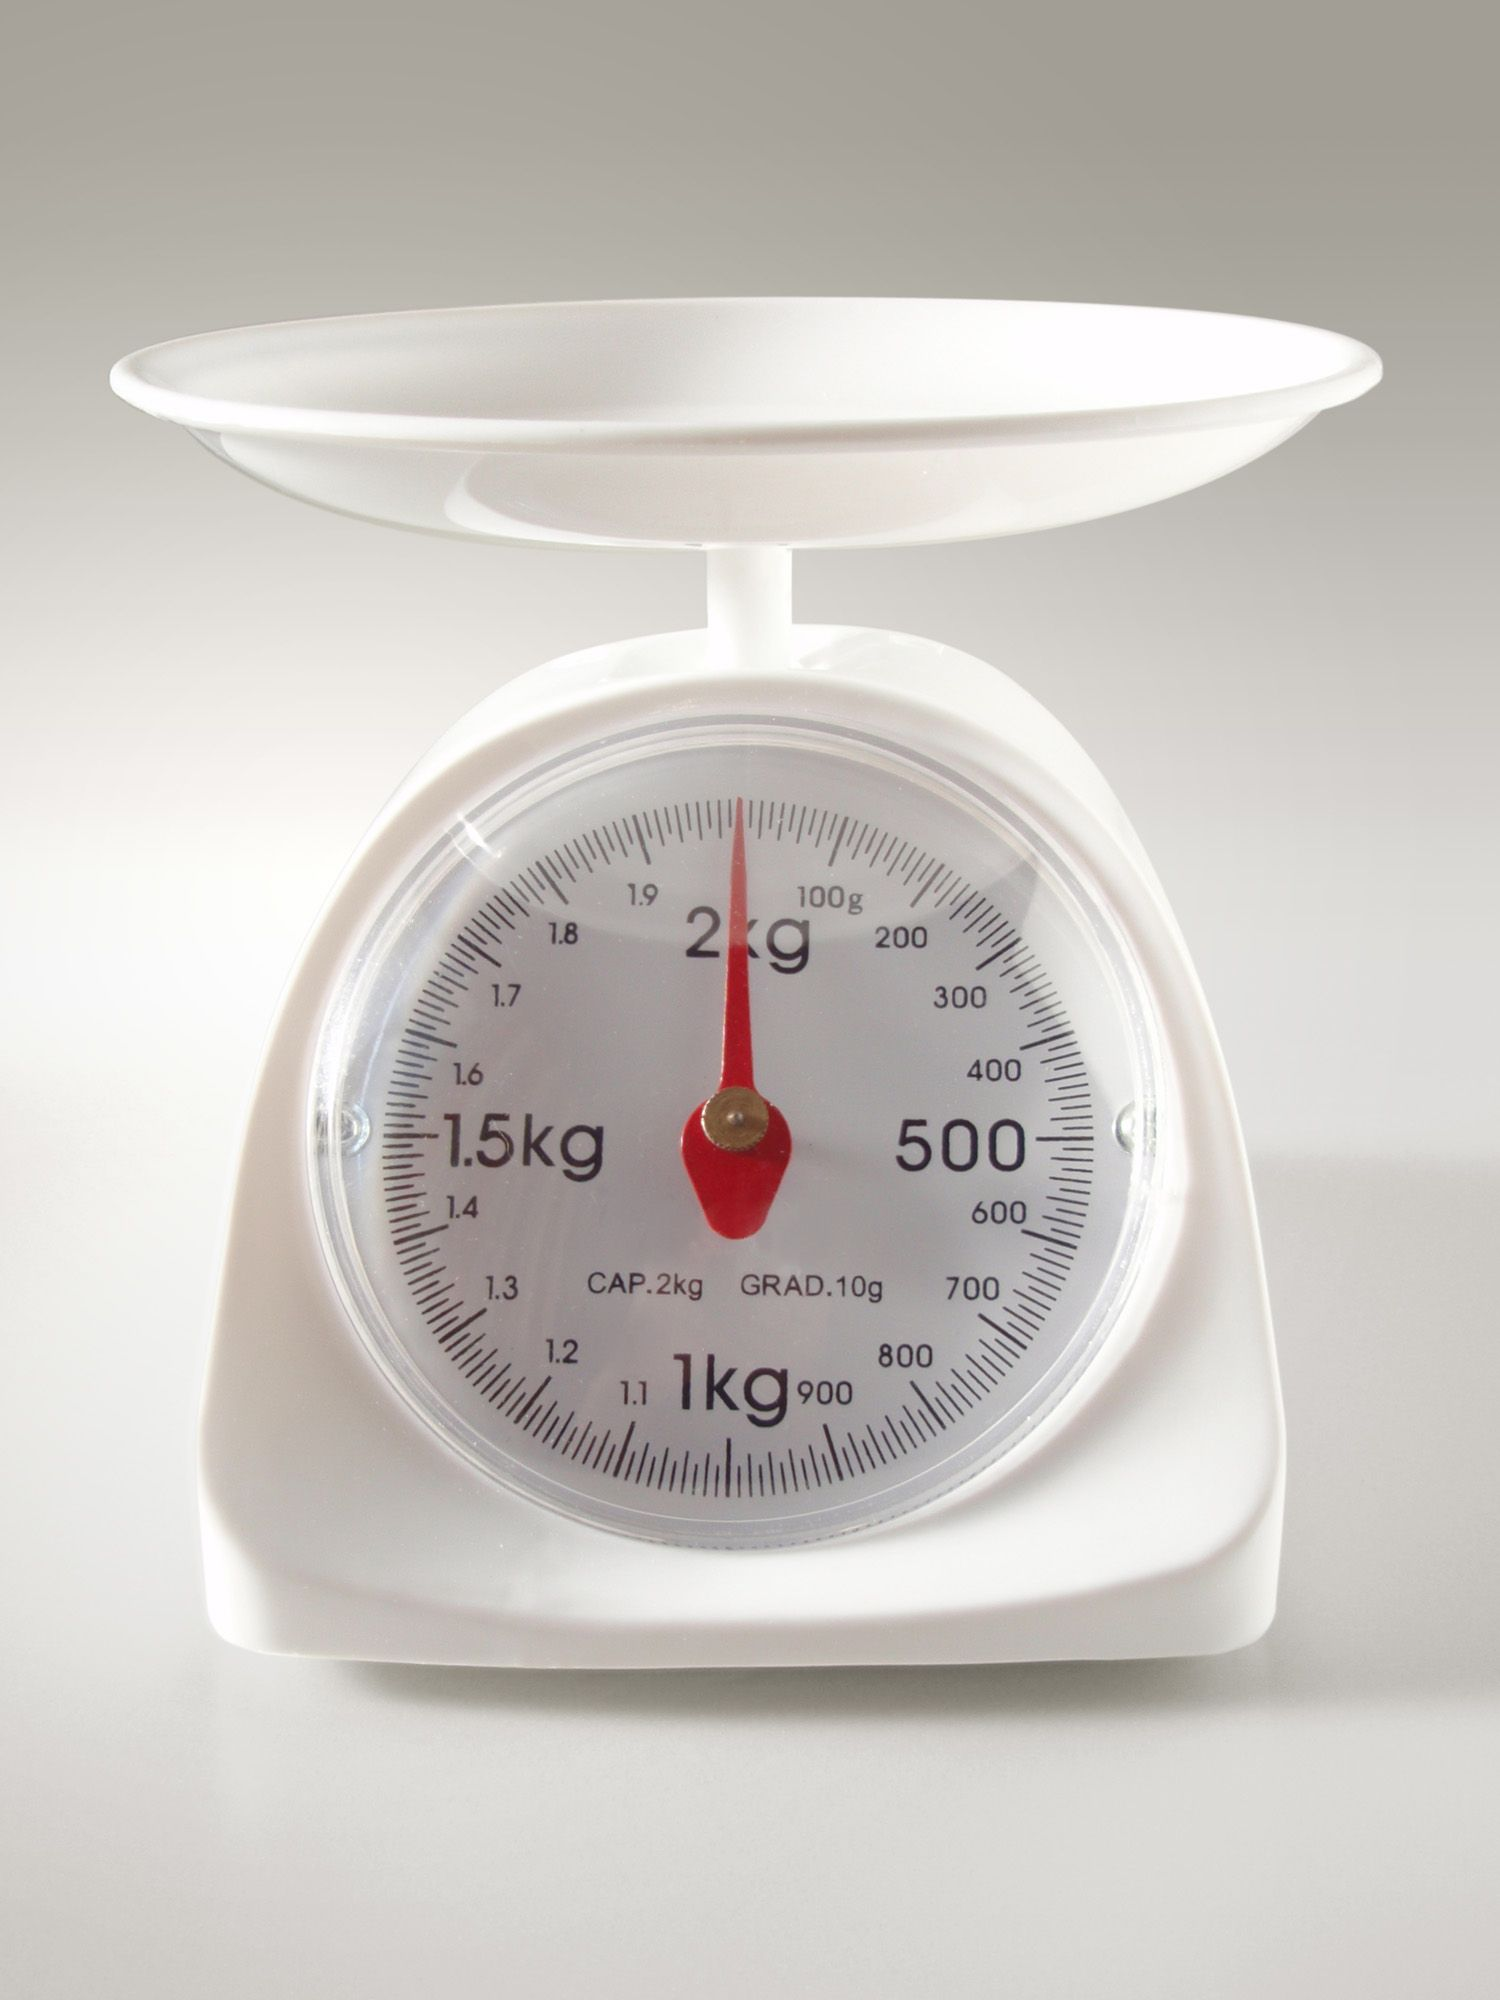 Small Kitchen Weighing Scales Mechanical Bathroom Scale Metric Google Search Measurement